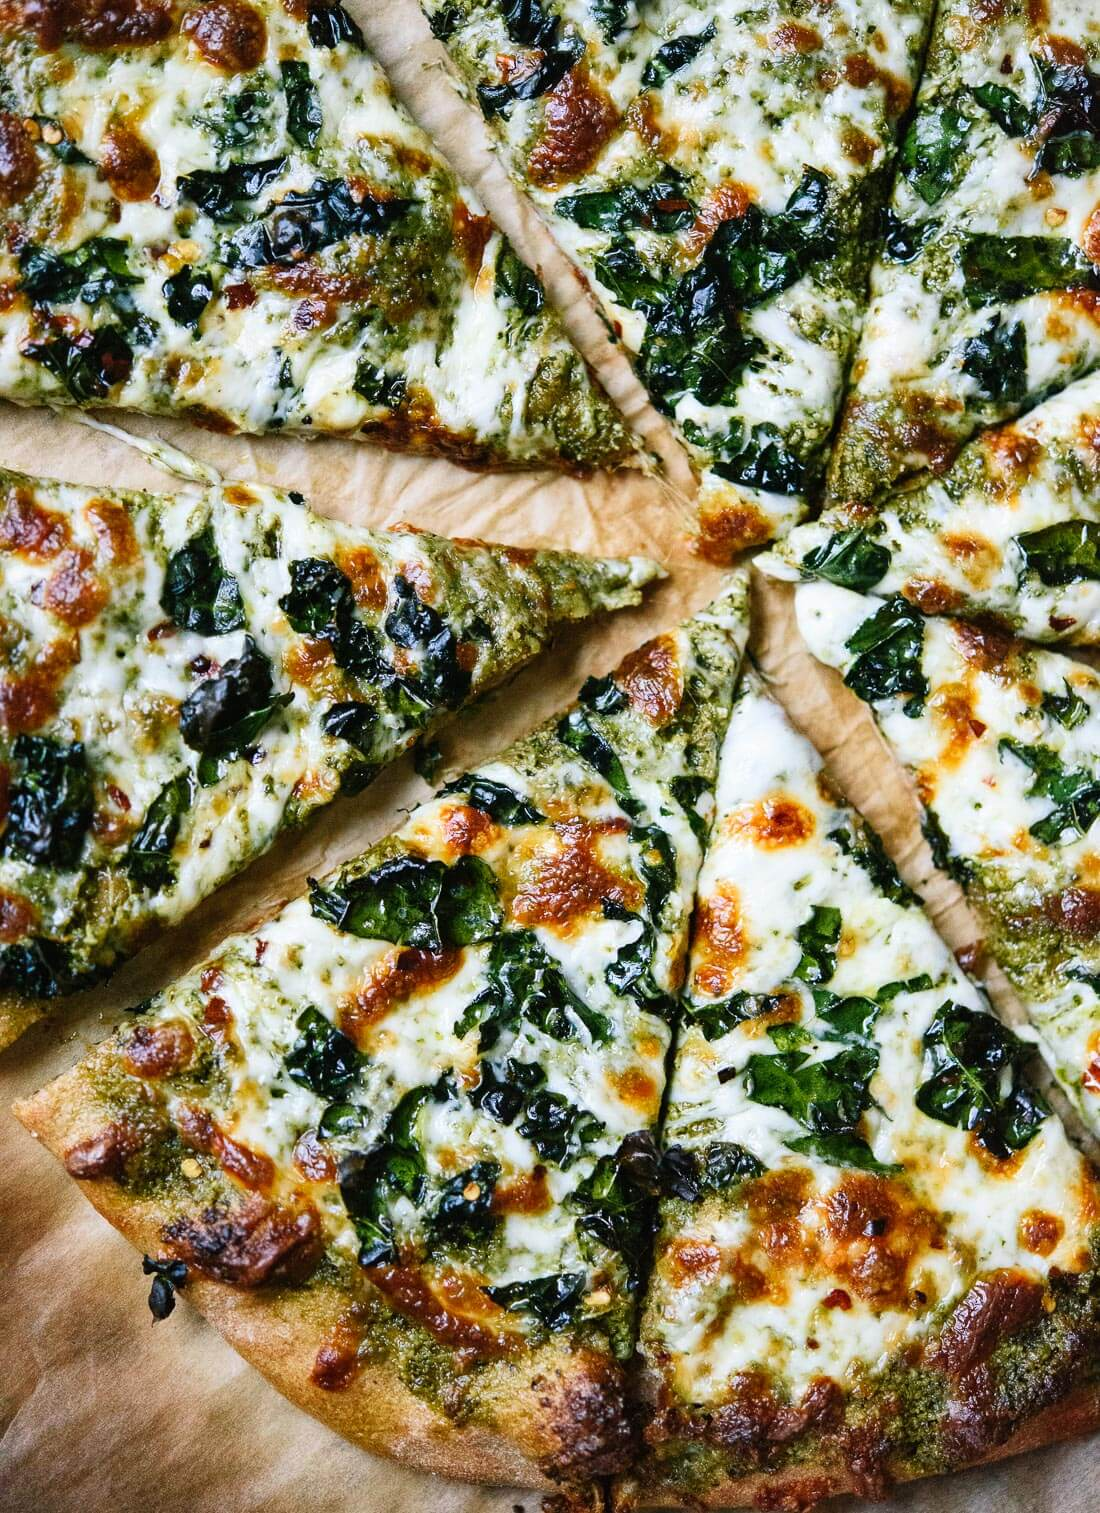 kale pesto pizza recipe - cookie and kate